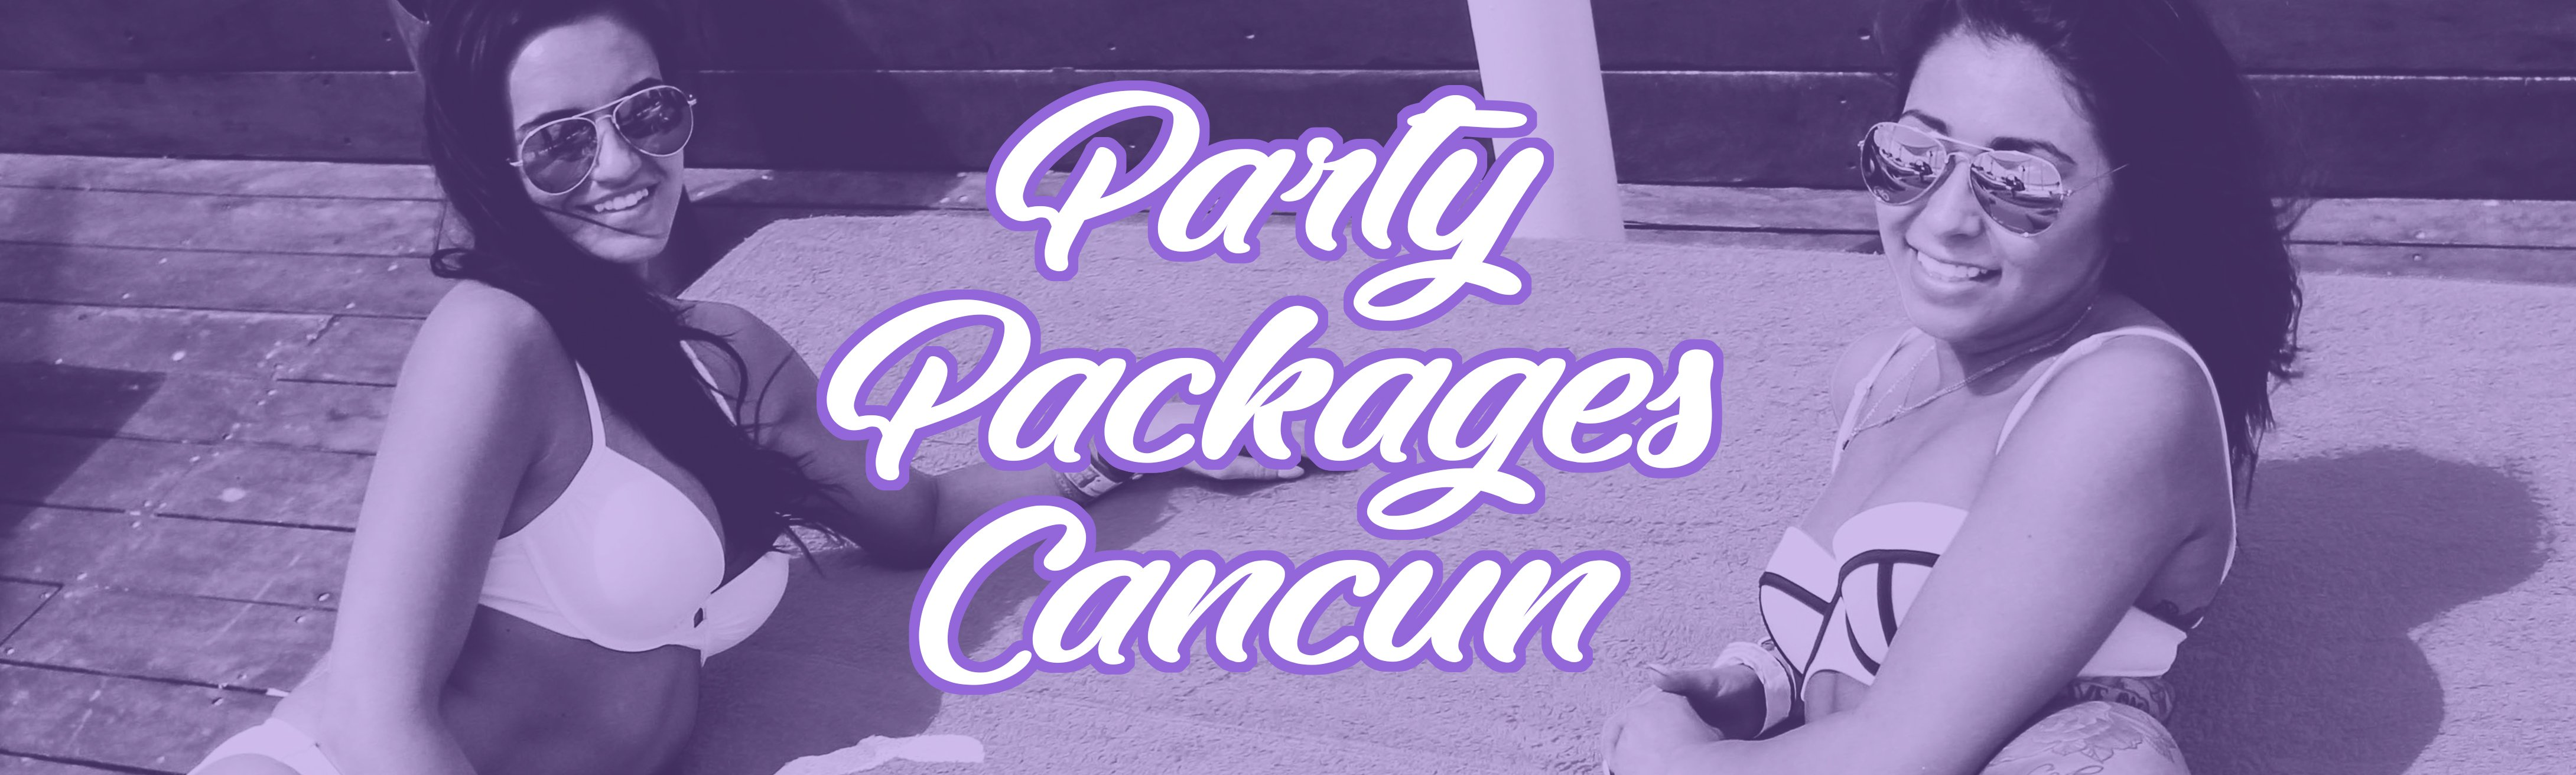 Spring Break Party Package CANCUN